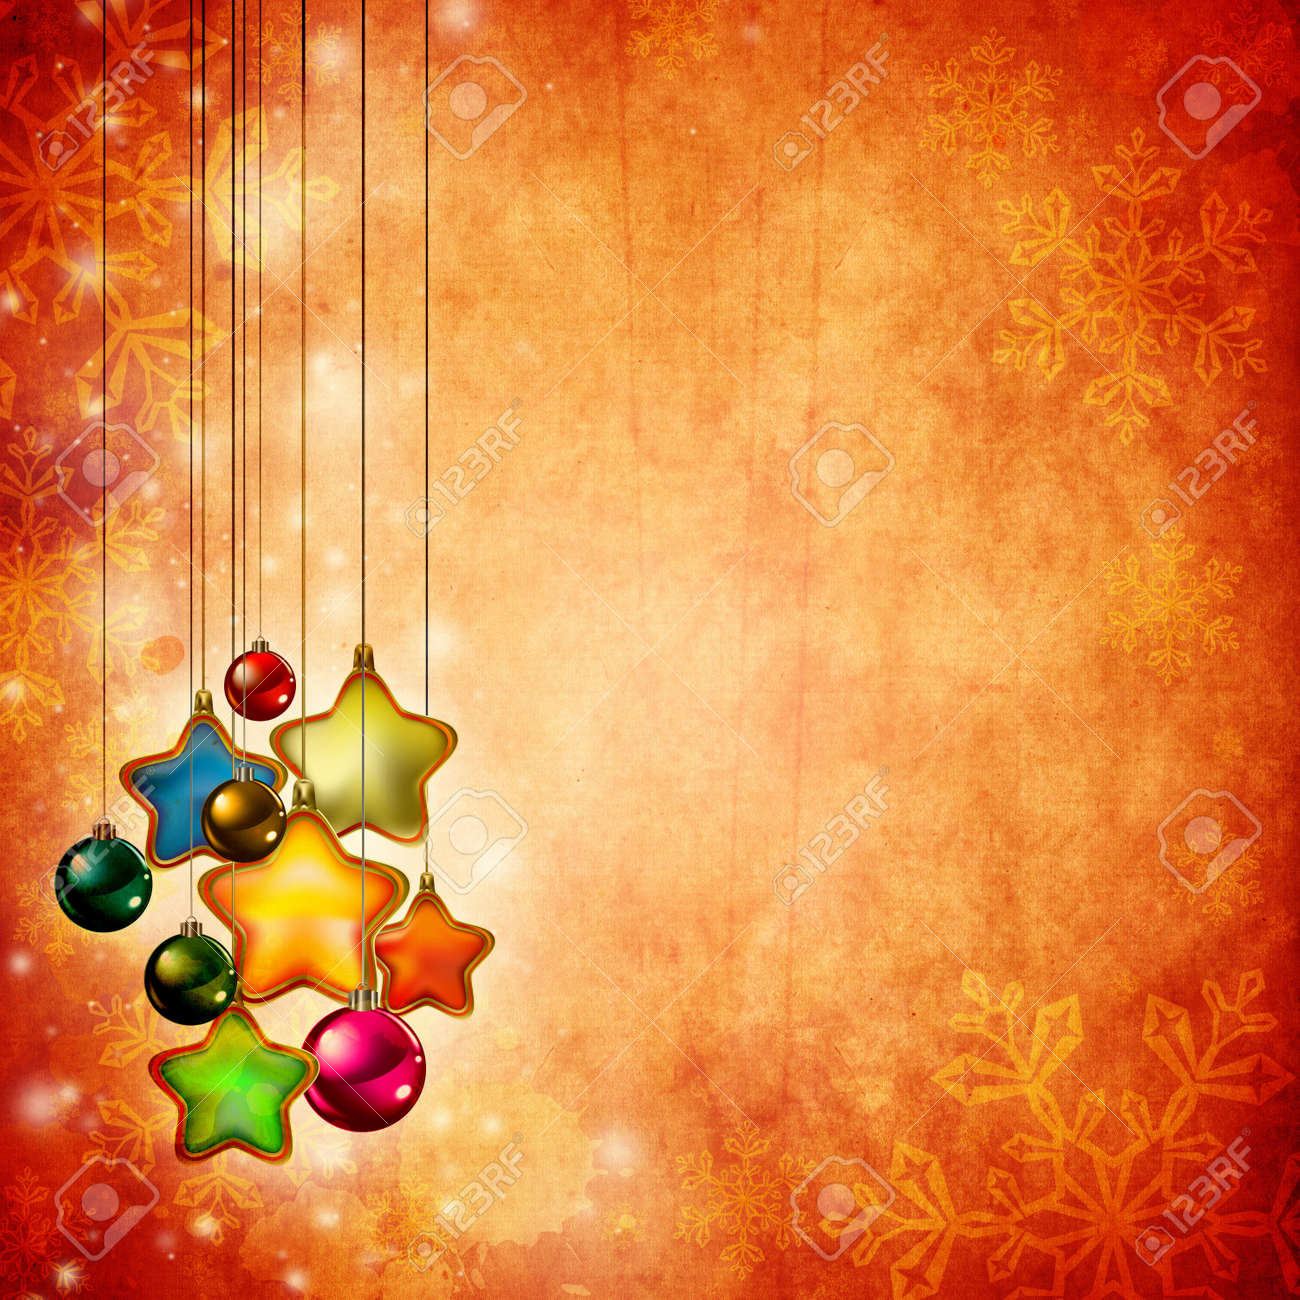 Vintage Christmas background design with copy space for your text and images, very high resolution available. Stock Photo - 10466122